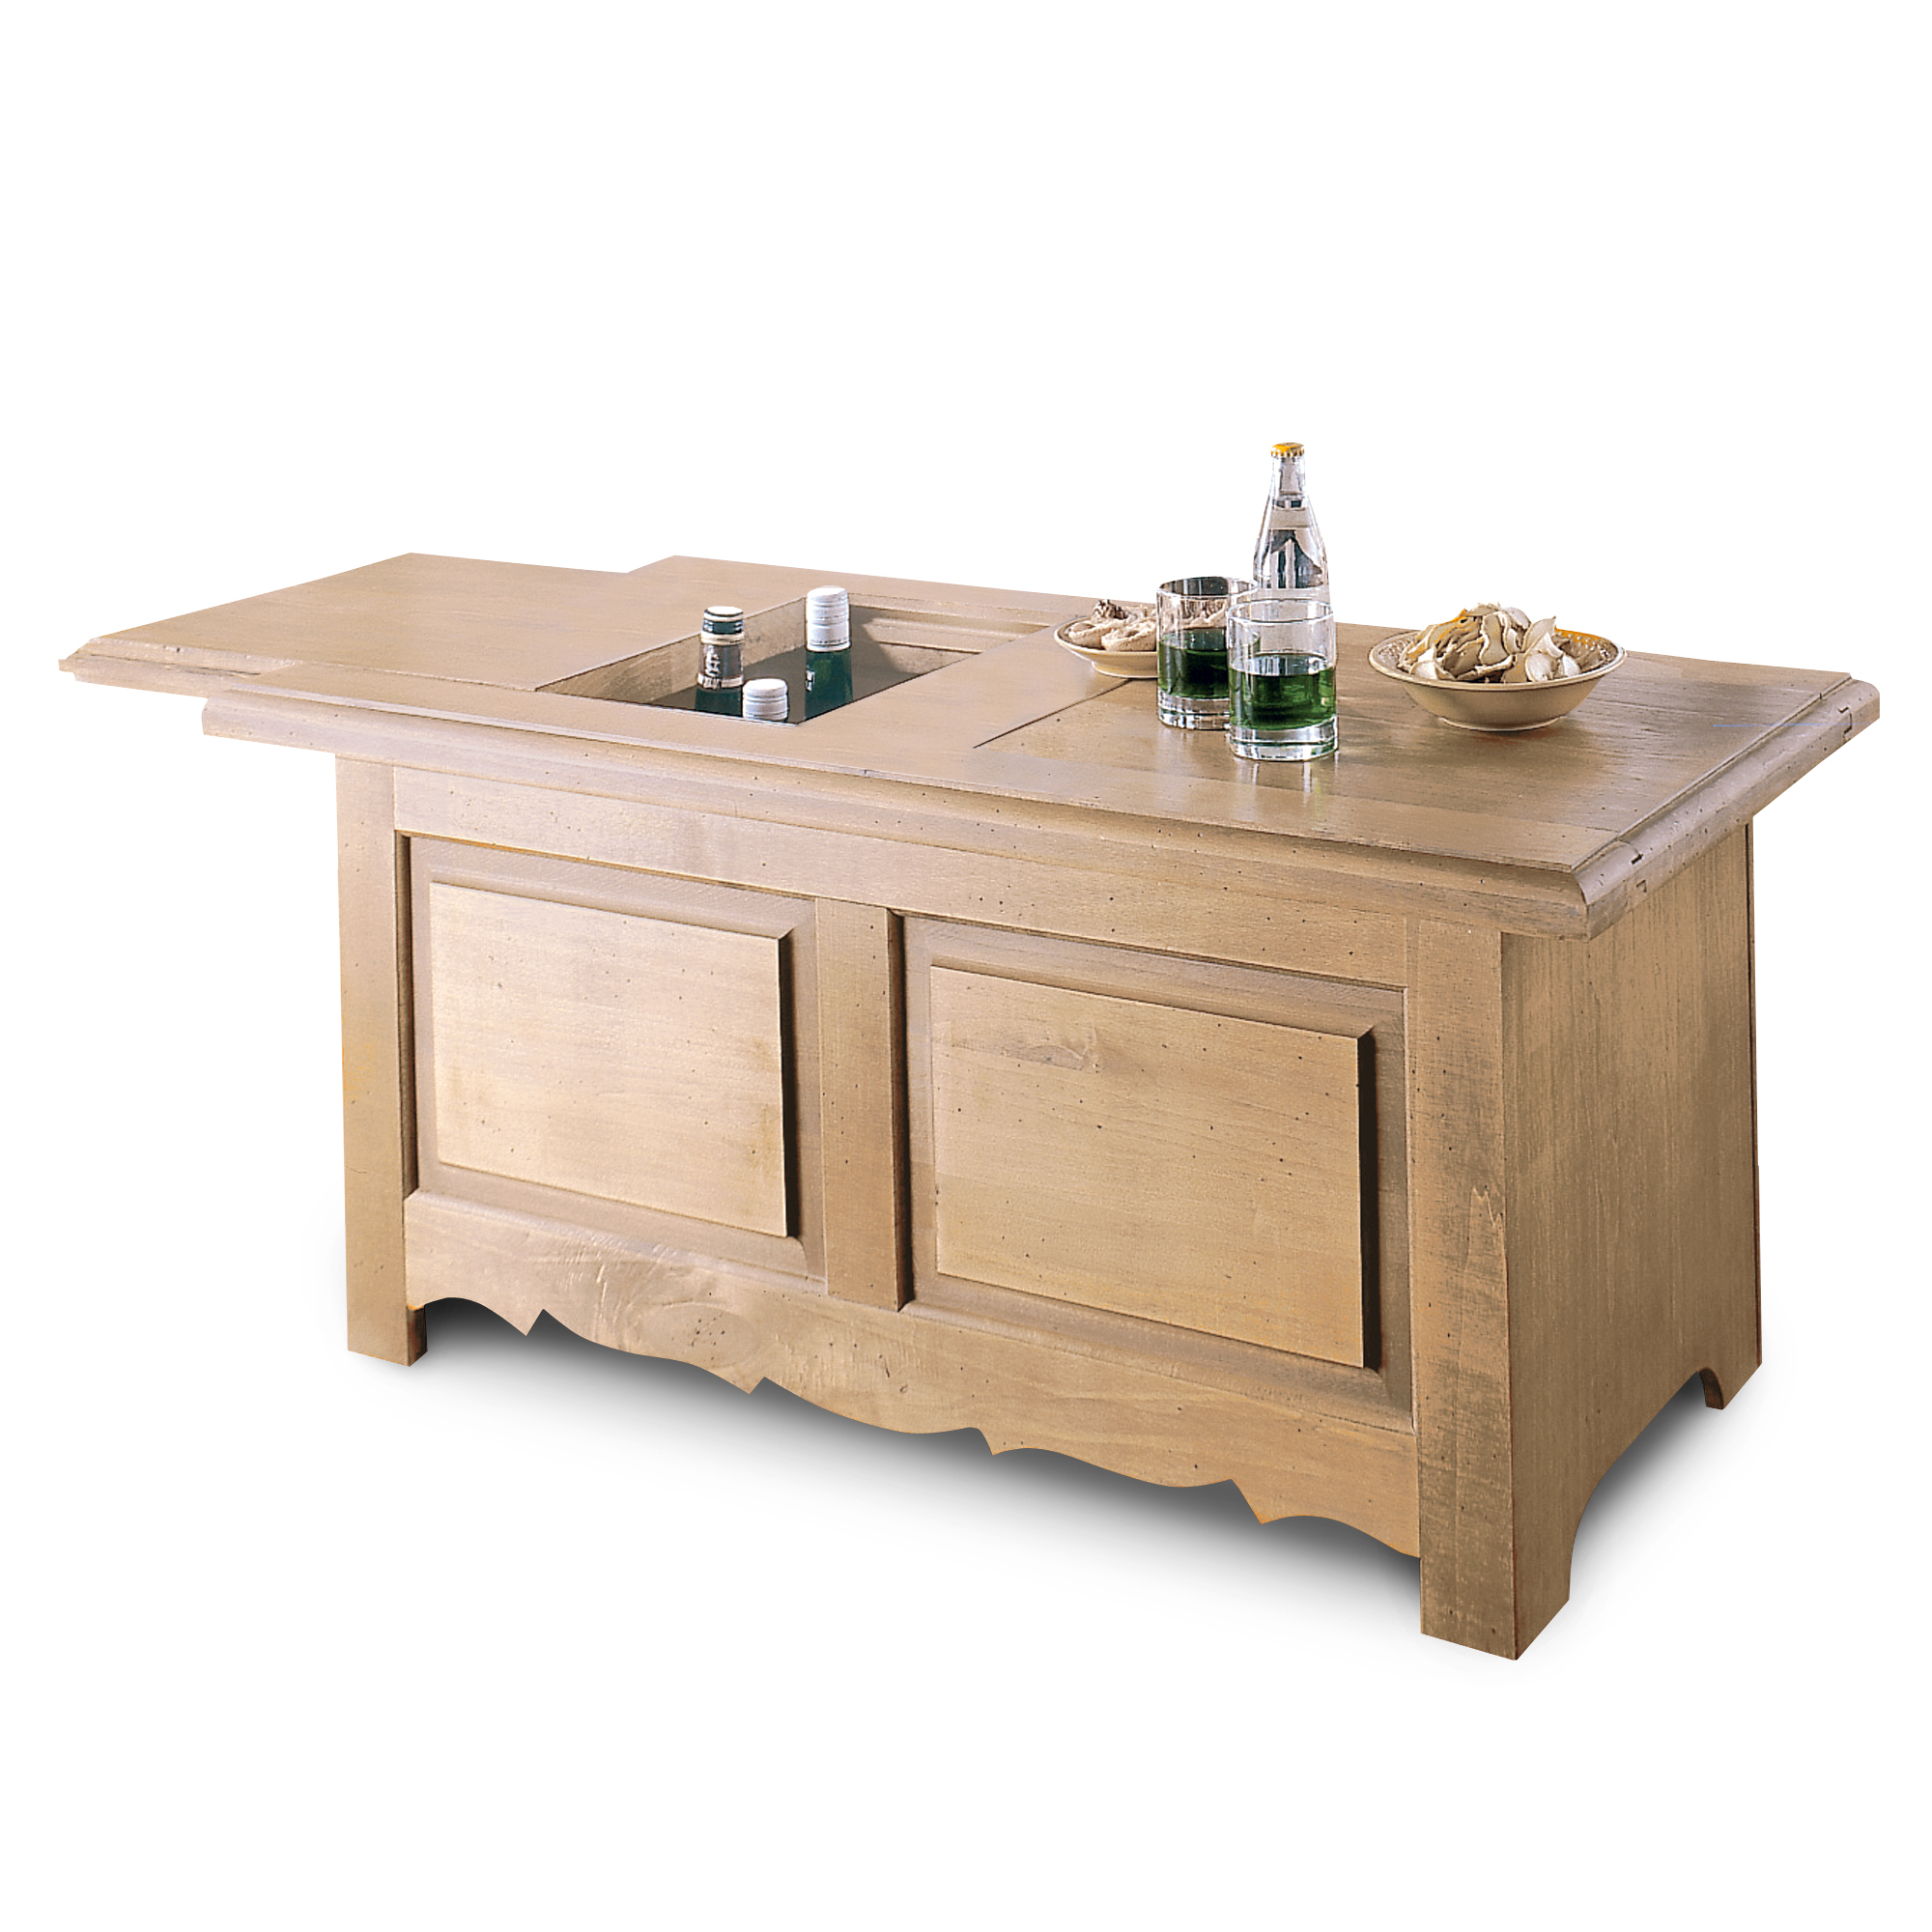 Table basse bar fait maison - Table basse faite maison ...